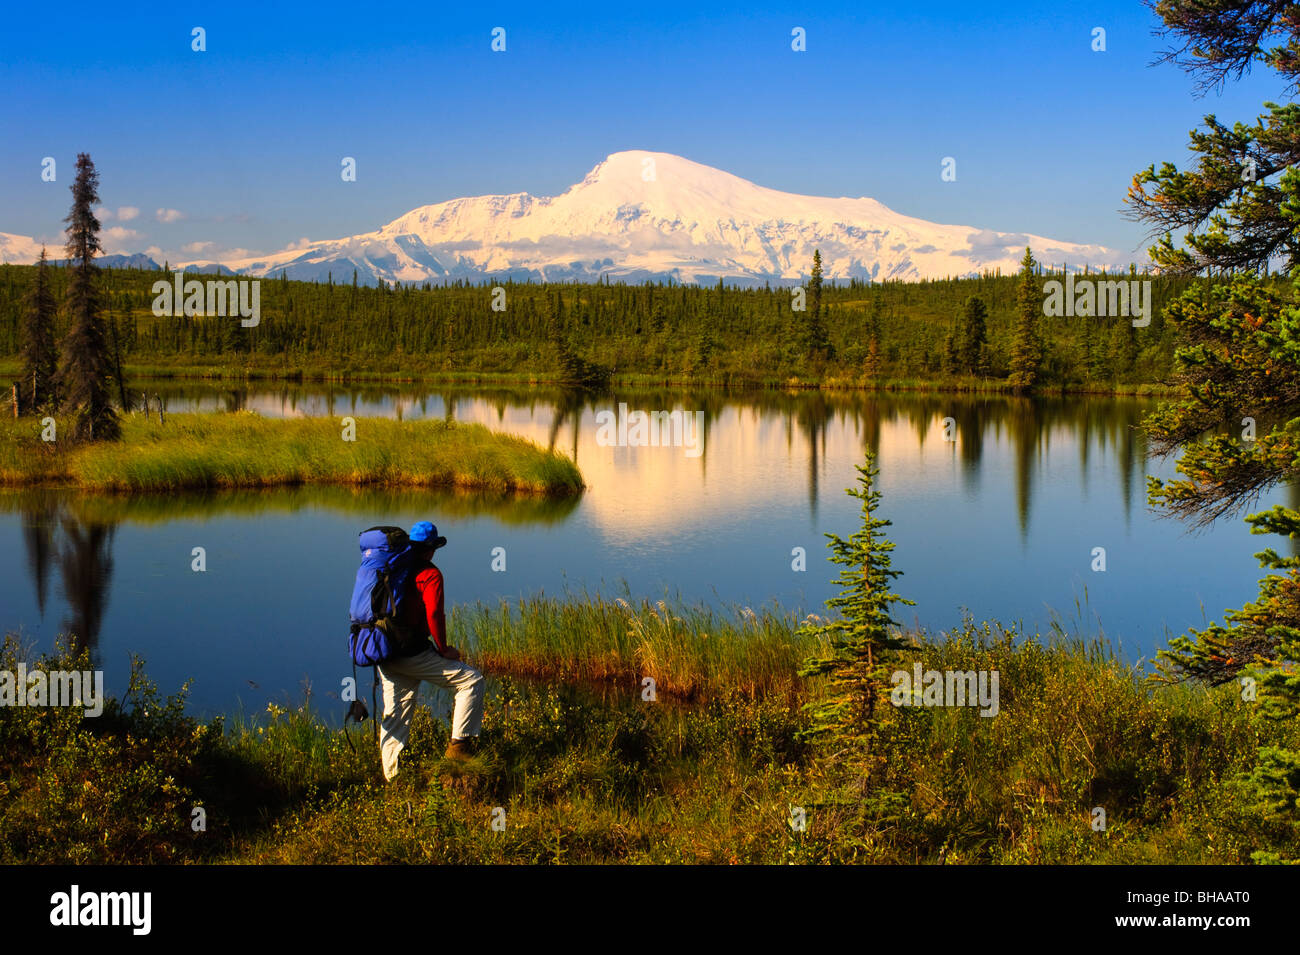 Male backpacker stops to enjoy the view of Mount Sanford, Wrangell Saint Elias National Park, Southcentral Alaska, - Stock Image